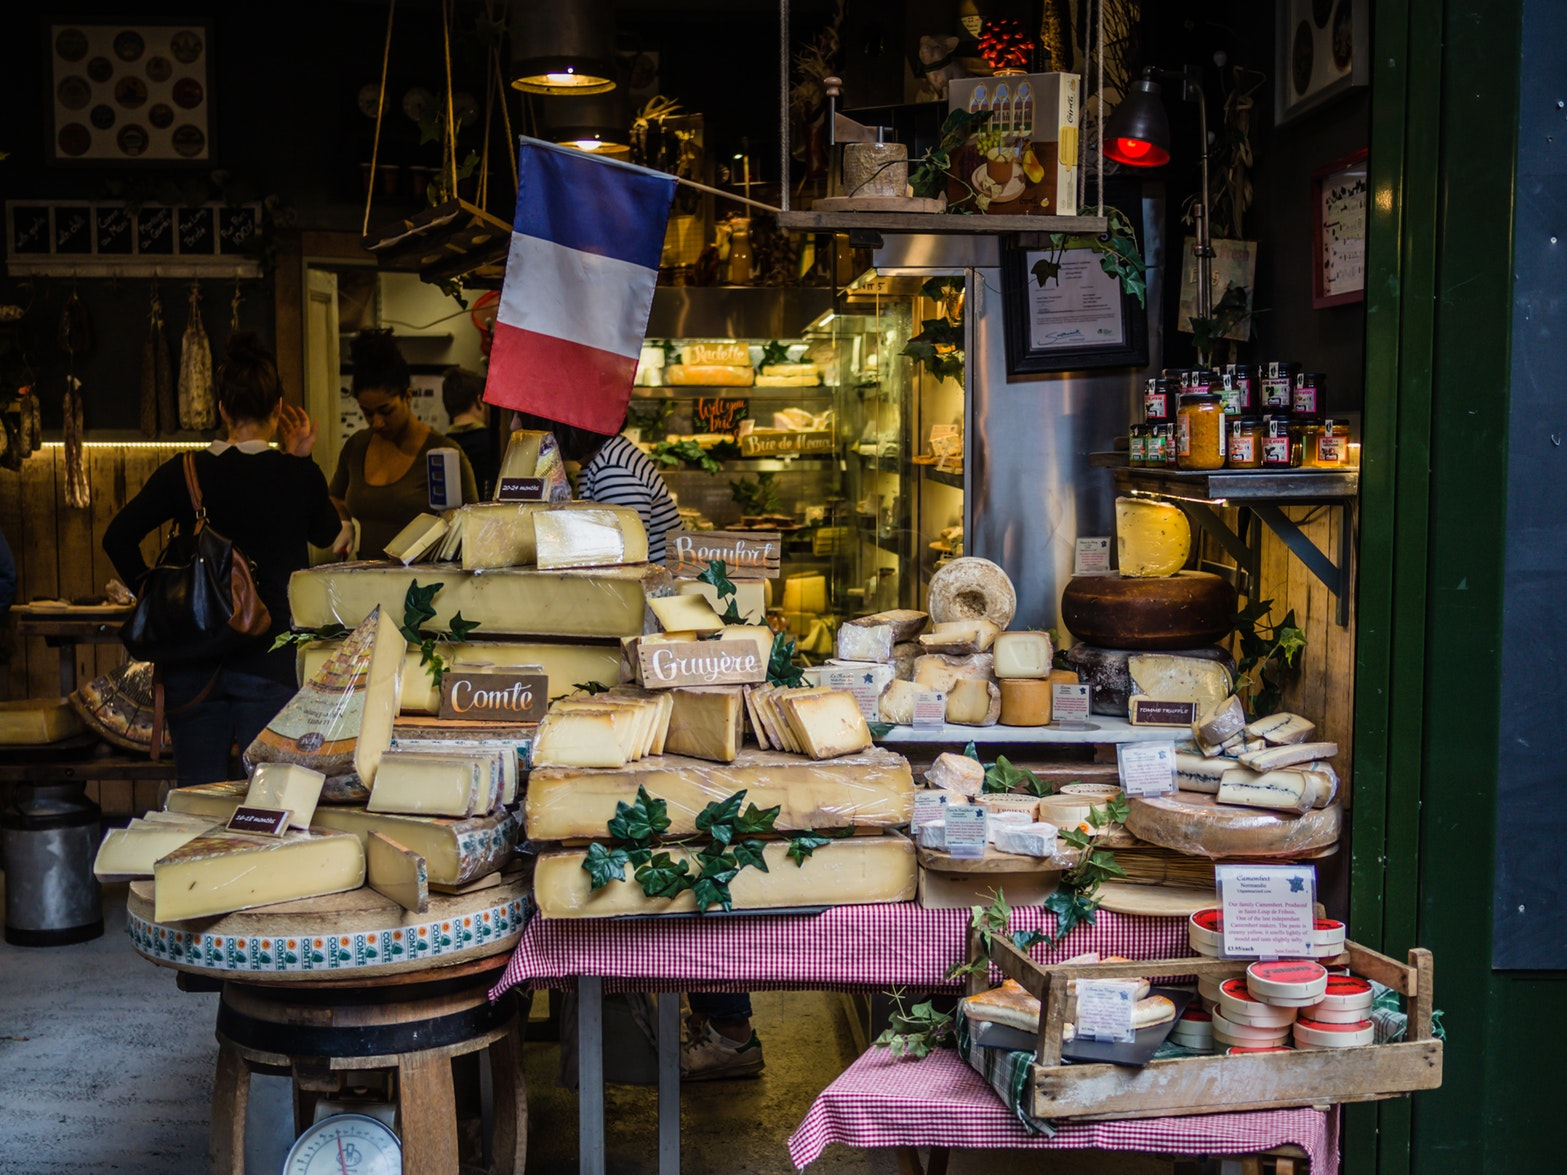 5 Reasons We Love The French photo